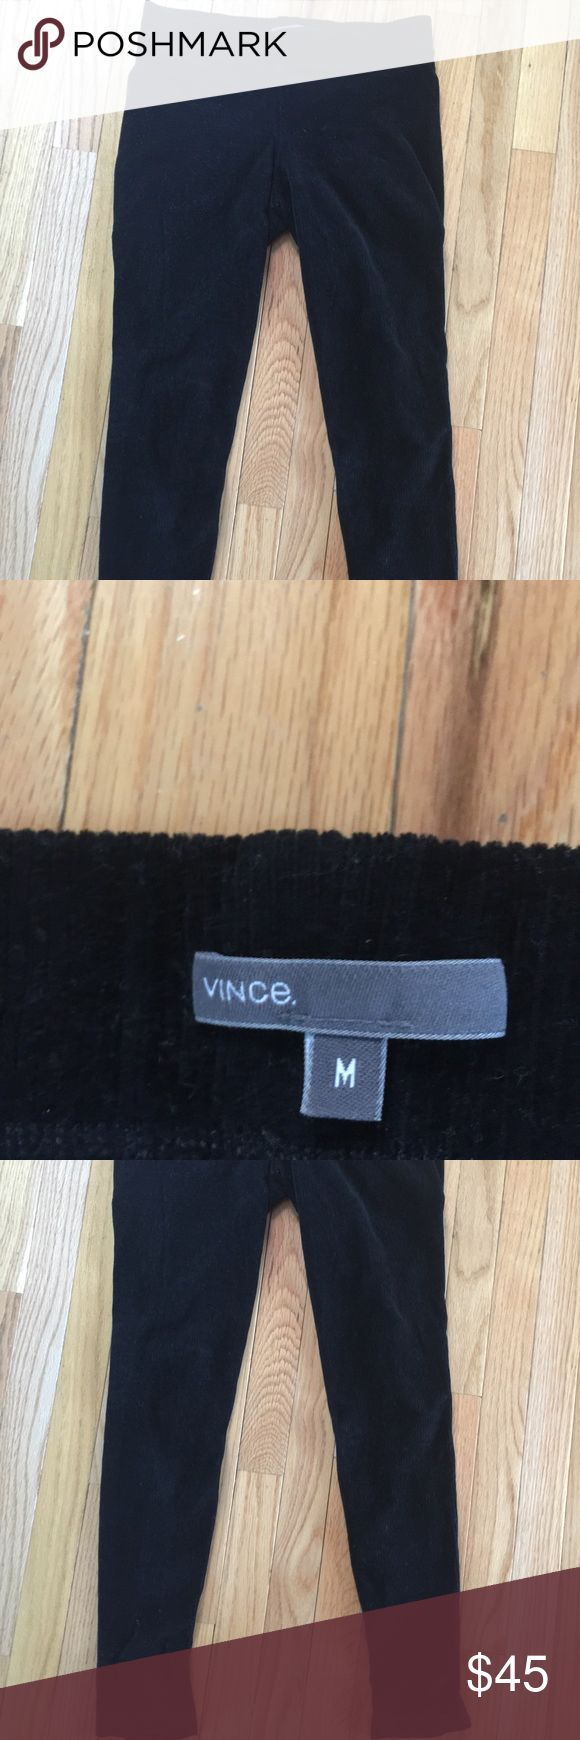 Vince leggings, black corduroy Comfy and casual Vince black corduroy leggings. Really warm. Only worn twice so like new, they've just been sitting in a drawer folded. Make me an offer! Vince Pants Leggings